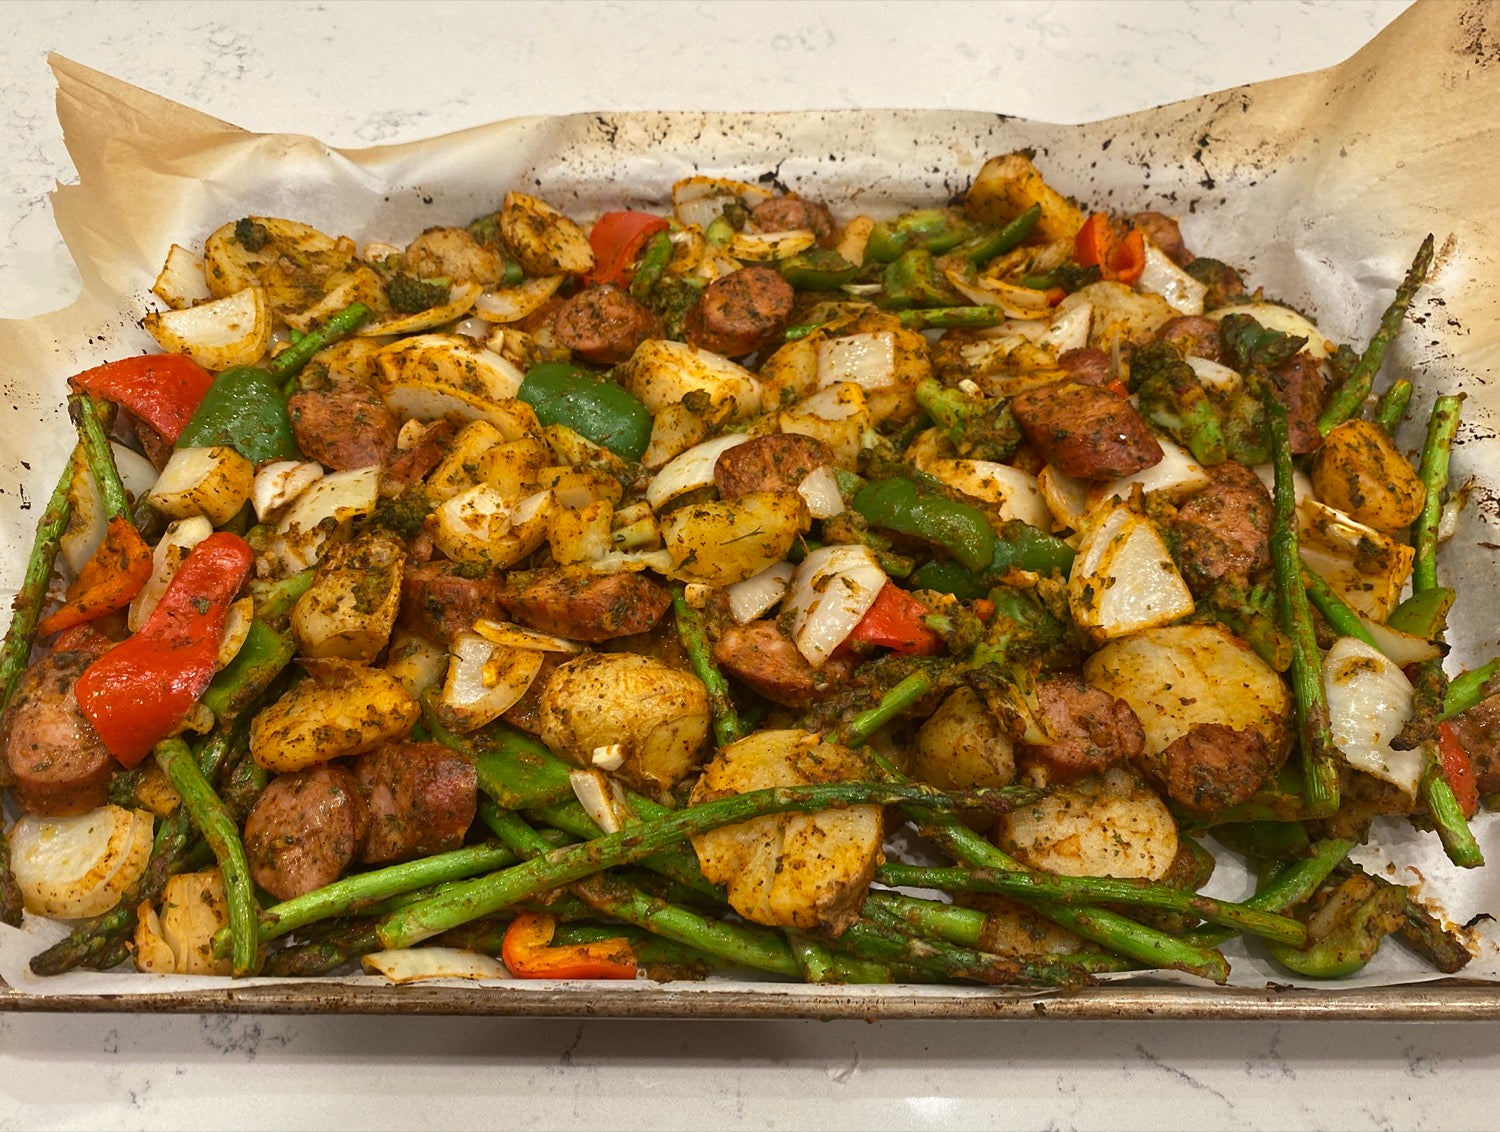 Spread Chicken Sausage and Vegetables on Sheet Pan